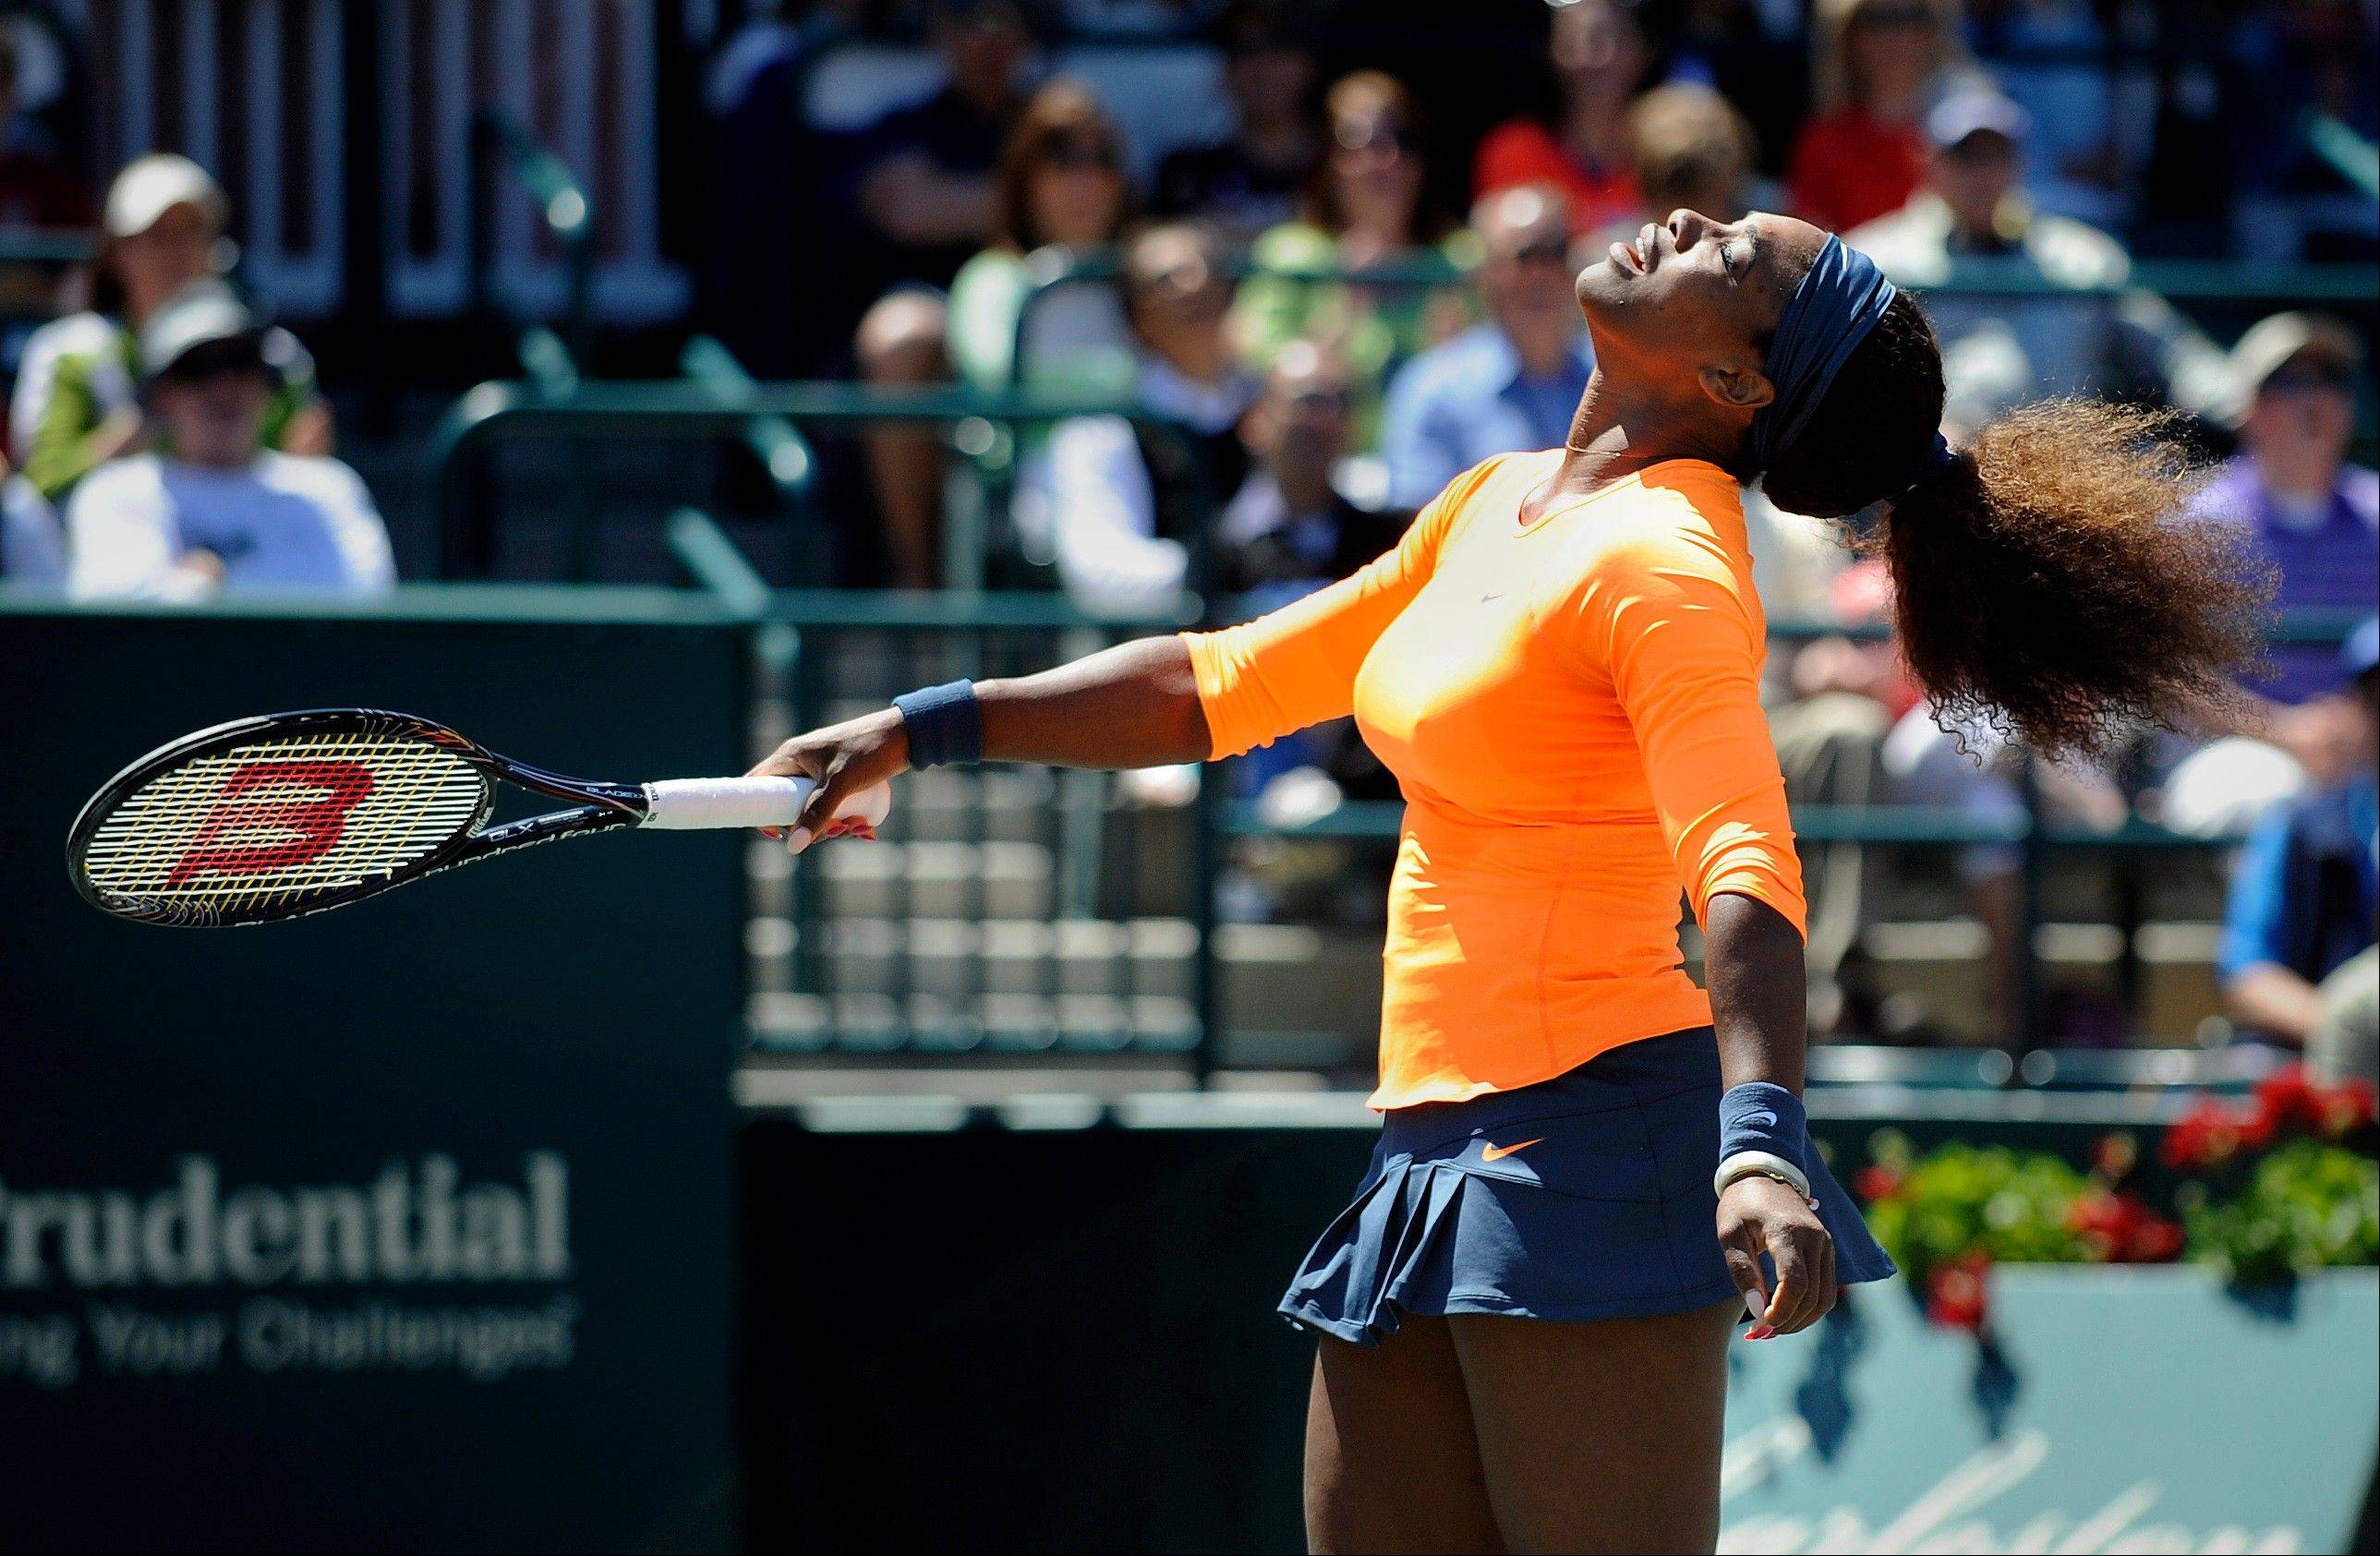 Serena Williams reacts after hitting a shot wide during a semifinal match against her sister Venus Williams at the Family Circle Cup tennis tournament in Charleston, S.C., Saturday, April 6, 2013. Serena won 6-1, 6-2.